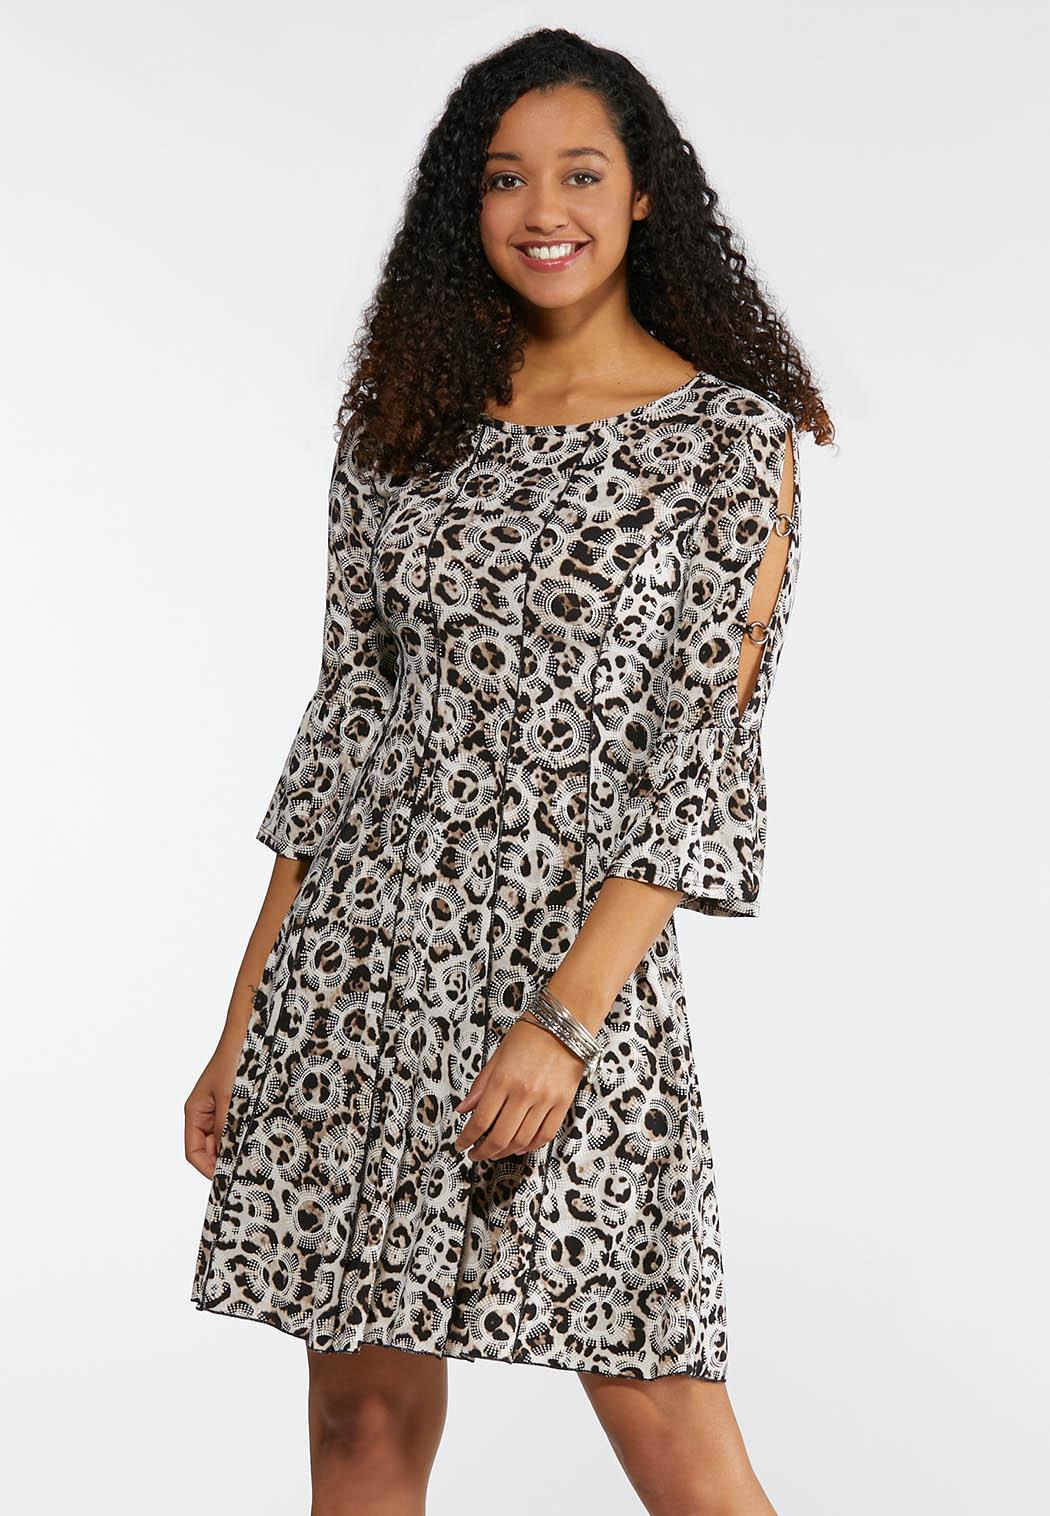 0e6ad749b4 Plus Size Dresses For Women - Swing